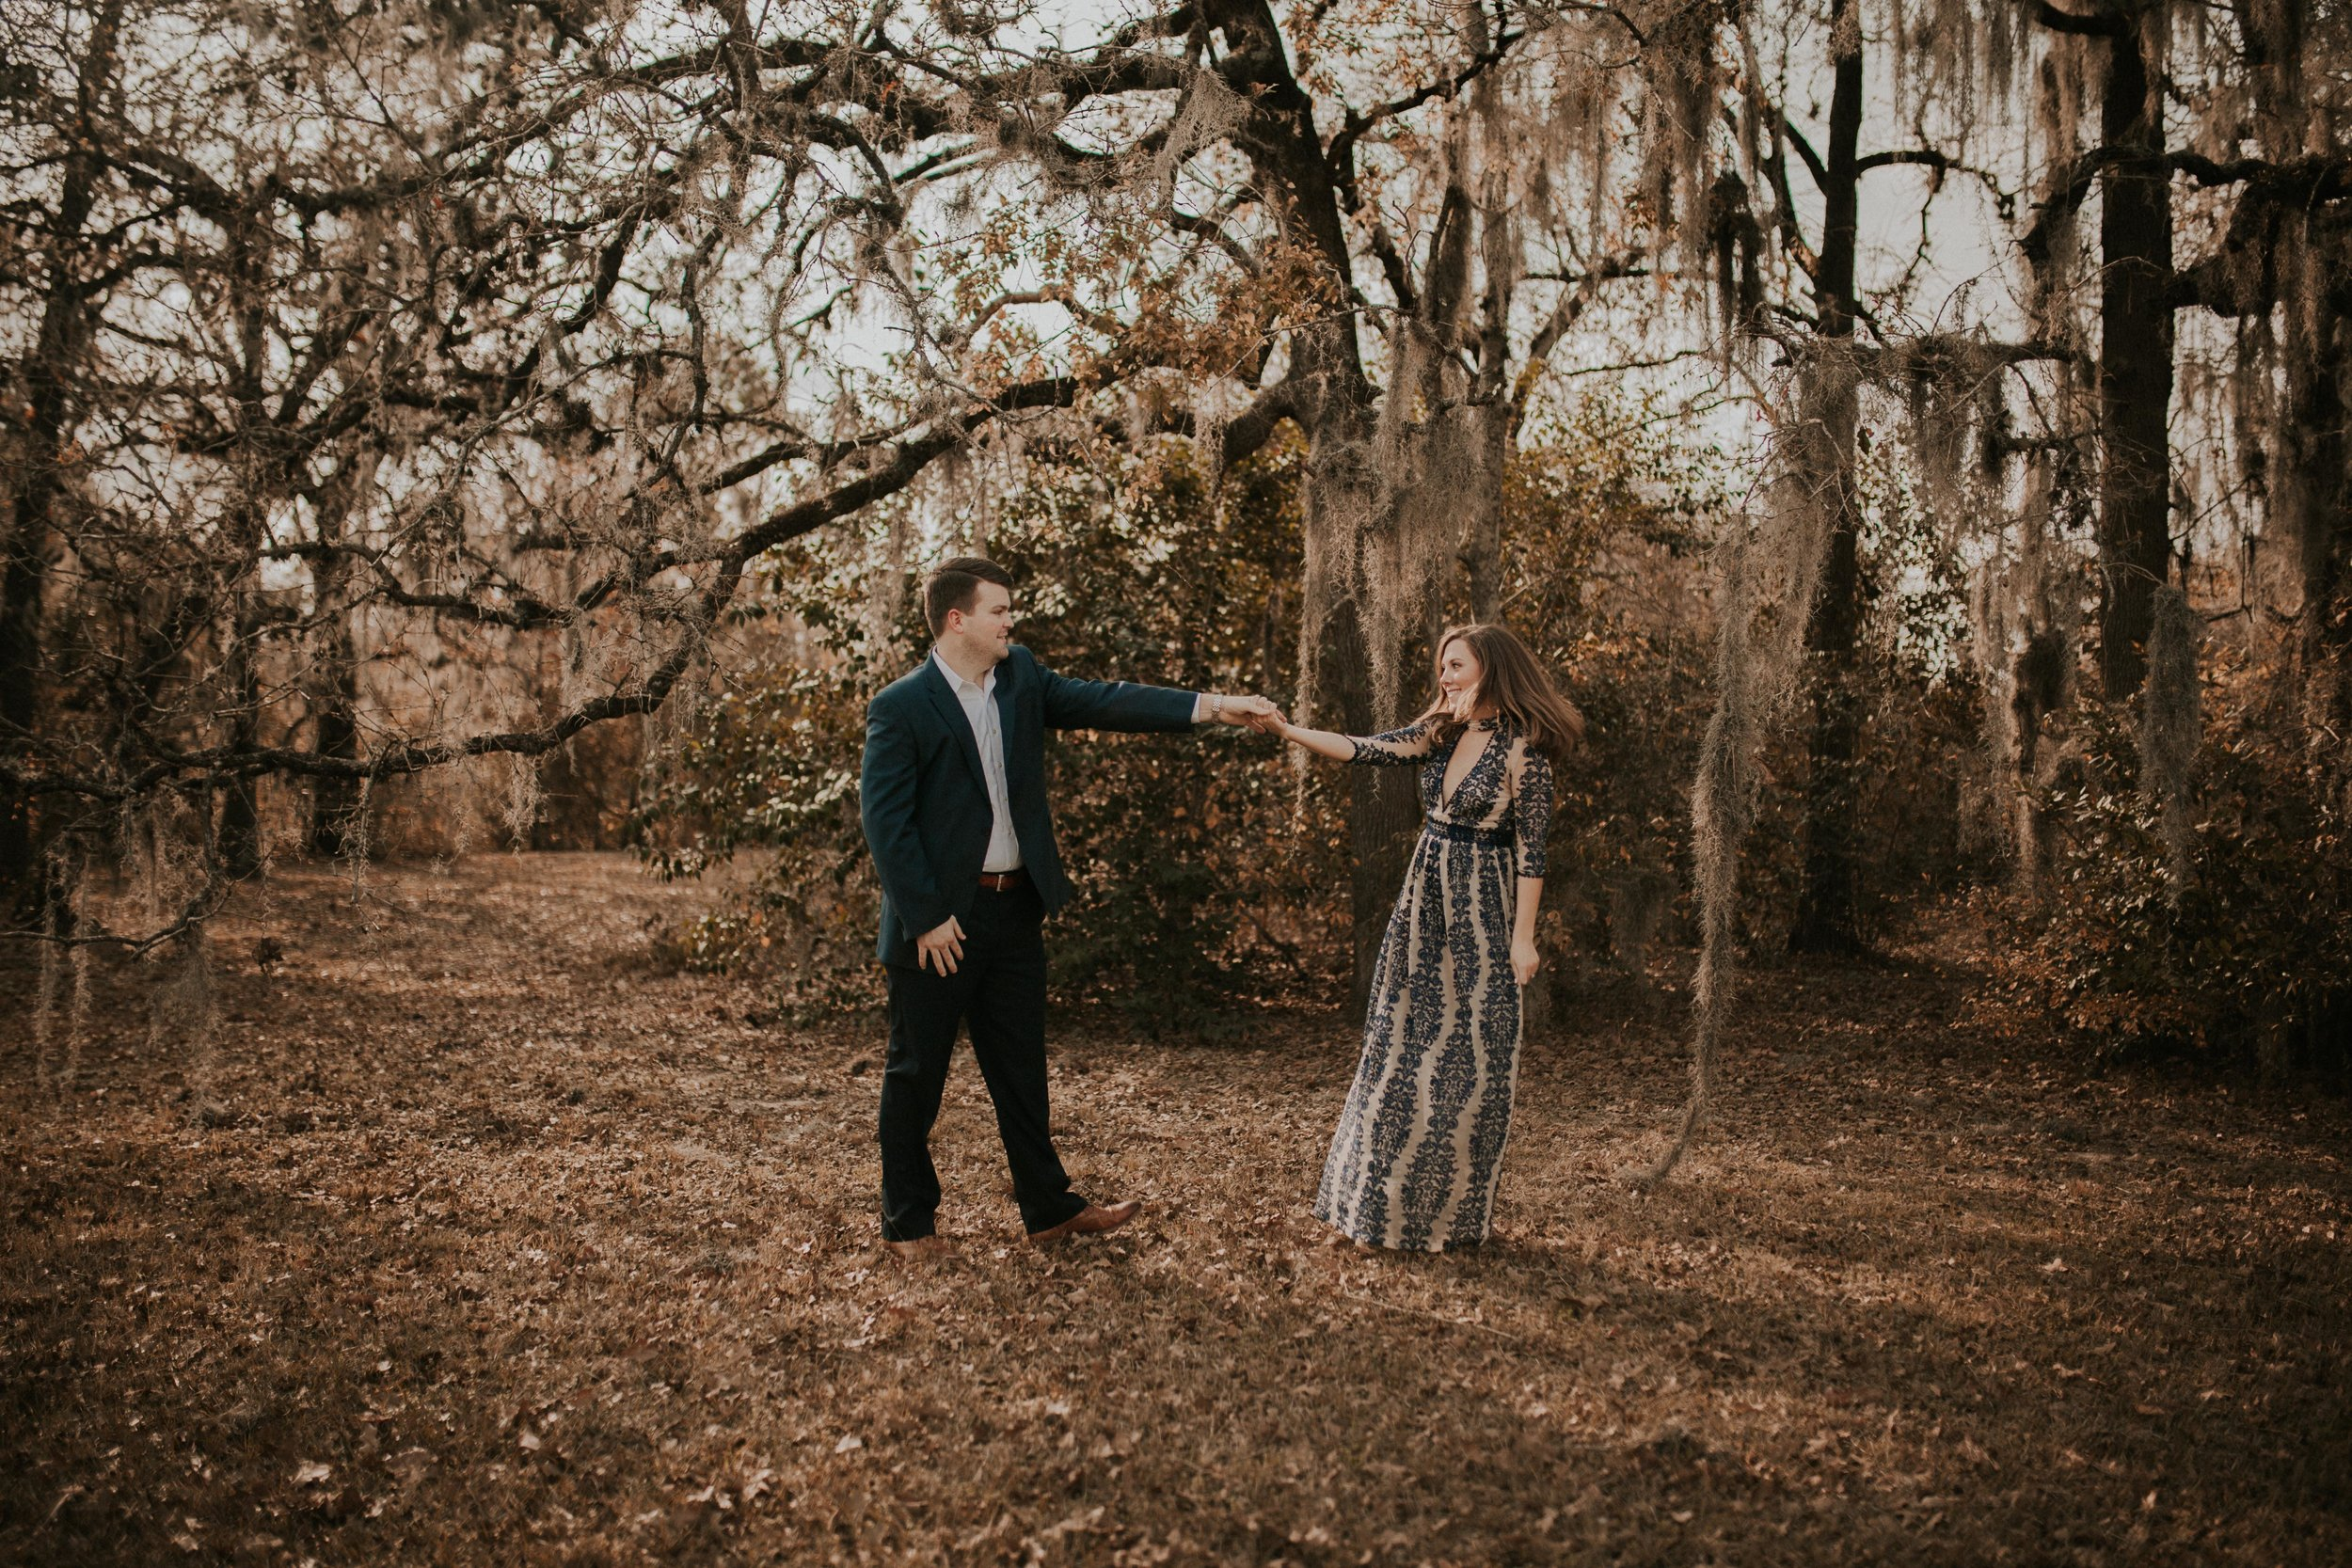 Memorial Park Engagement Session Houston Texas - Madeleine Frost-1159.jpg